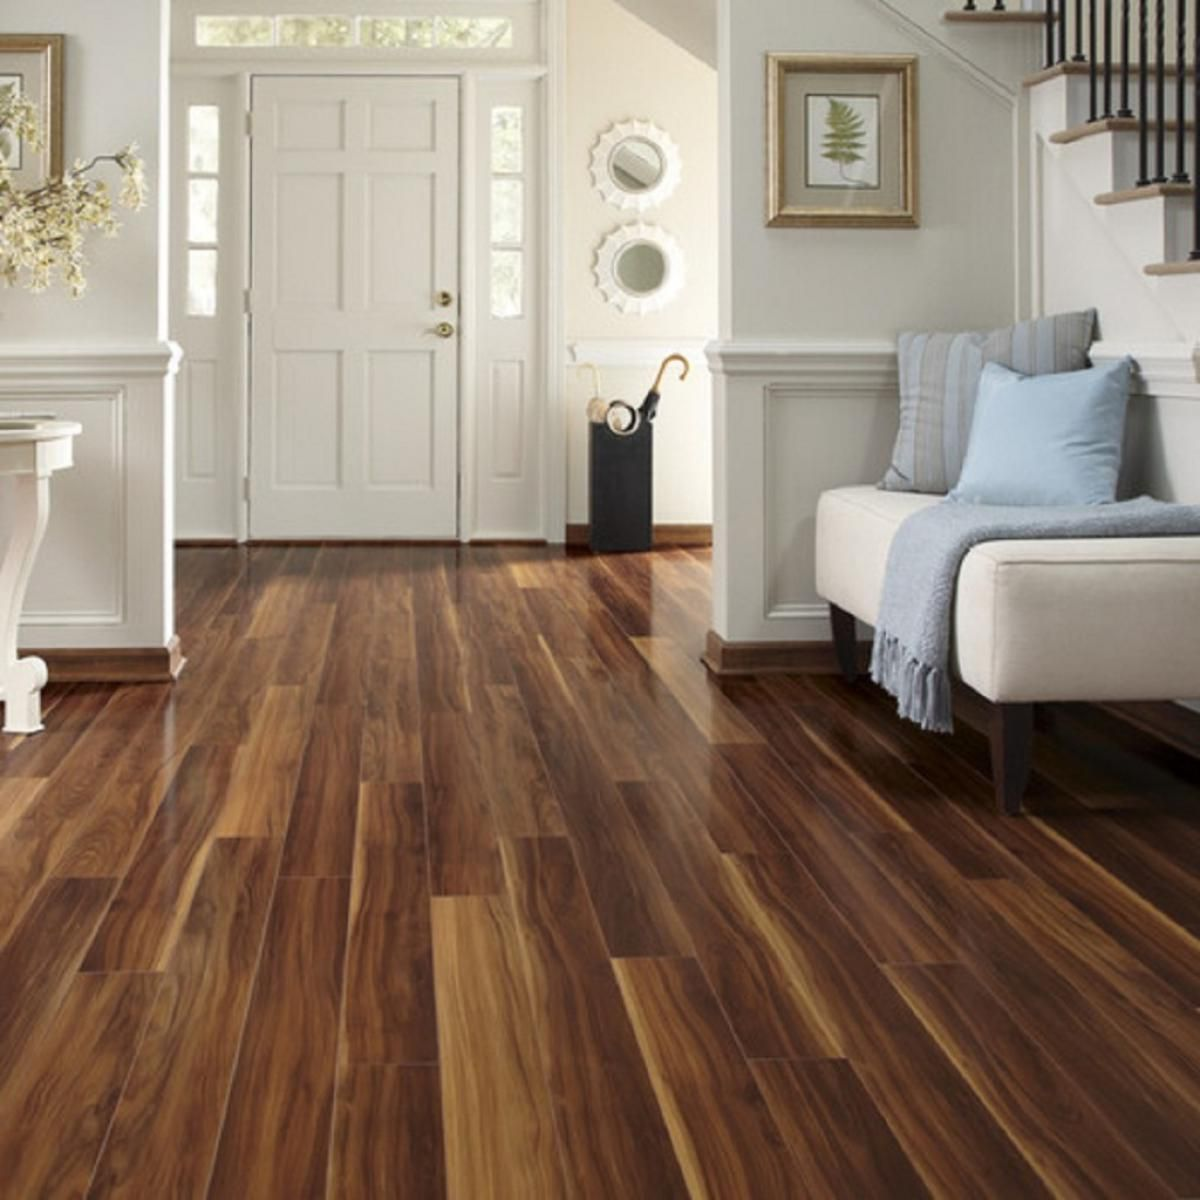 Modern wood flooring 55 photos innovative on modern wood flooring ...